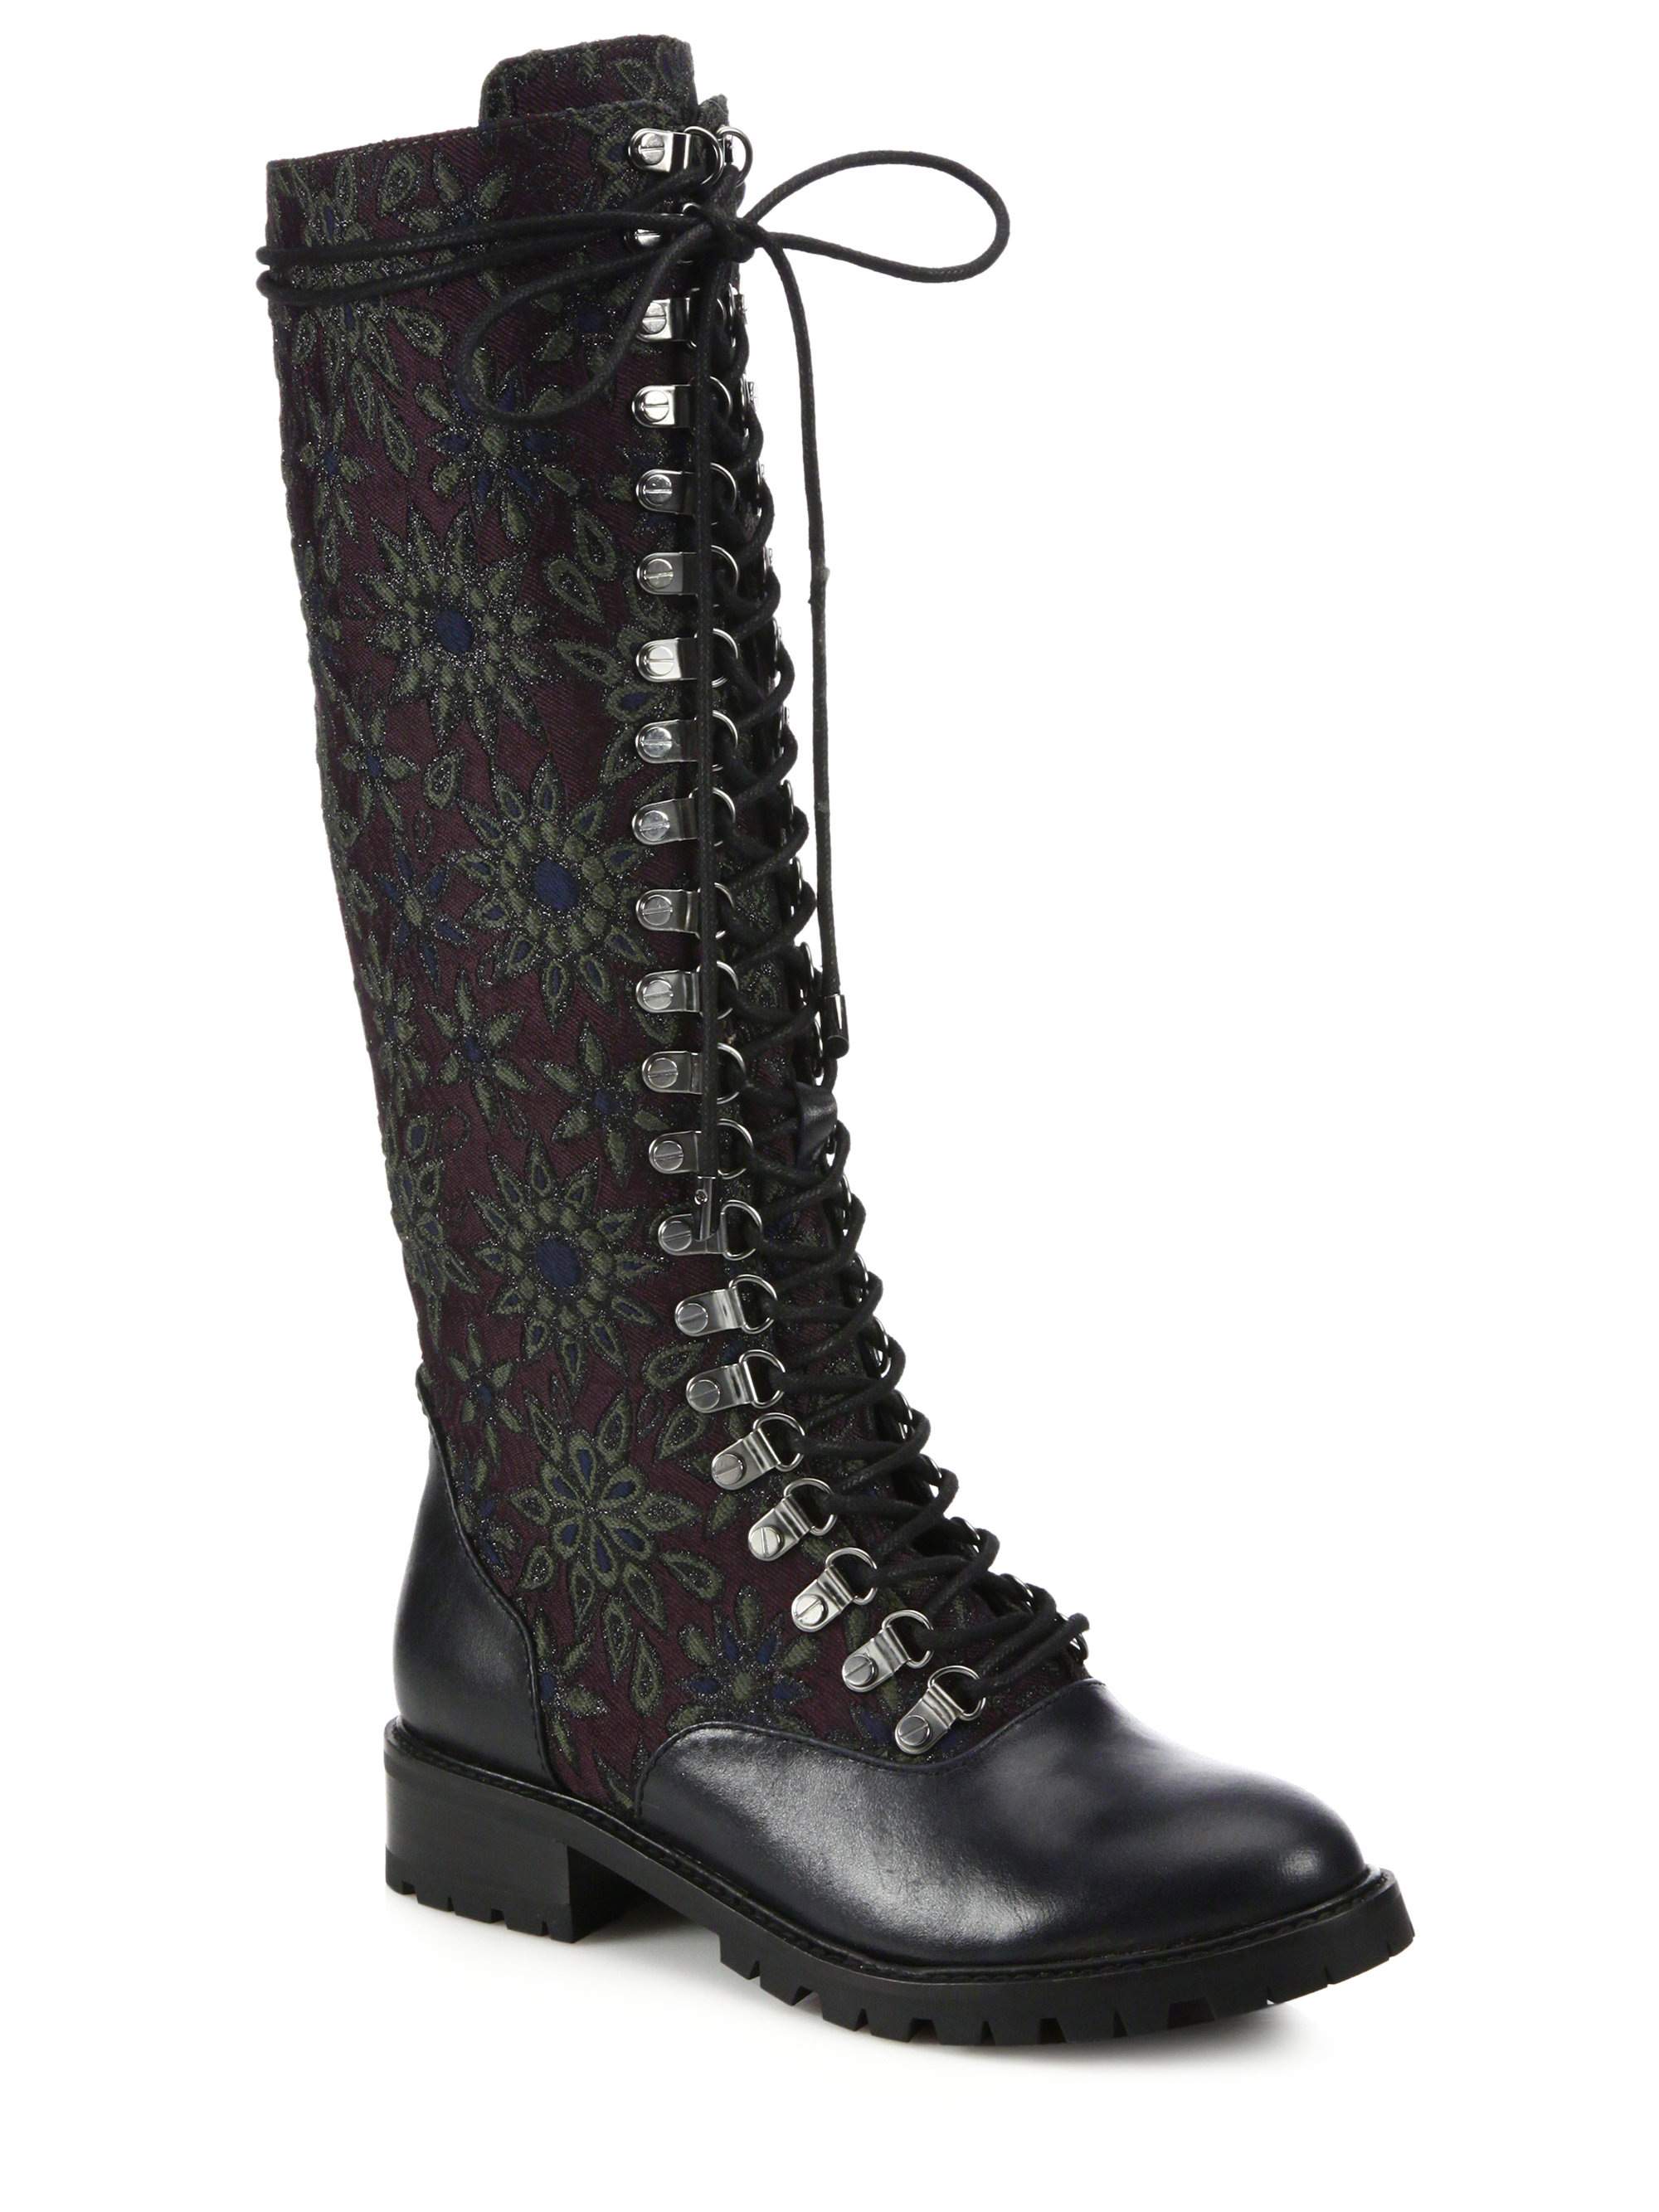 Alice Olivia Terra Leather Amp Jacquard Knee High Boots In